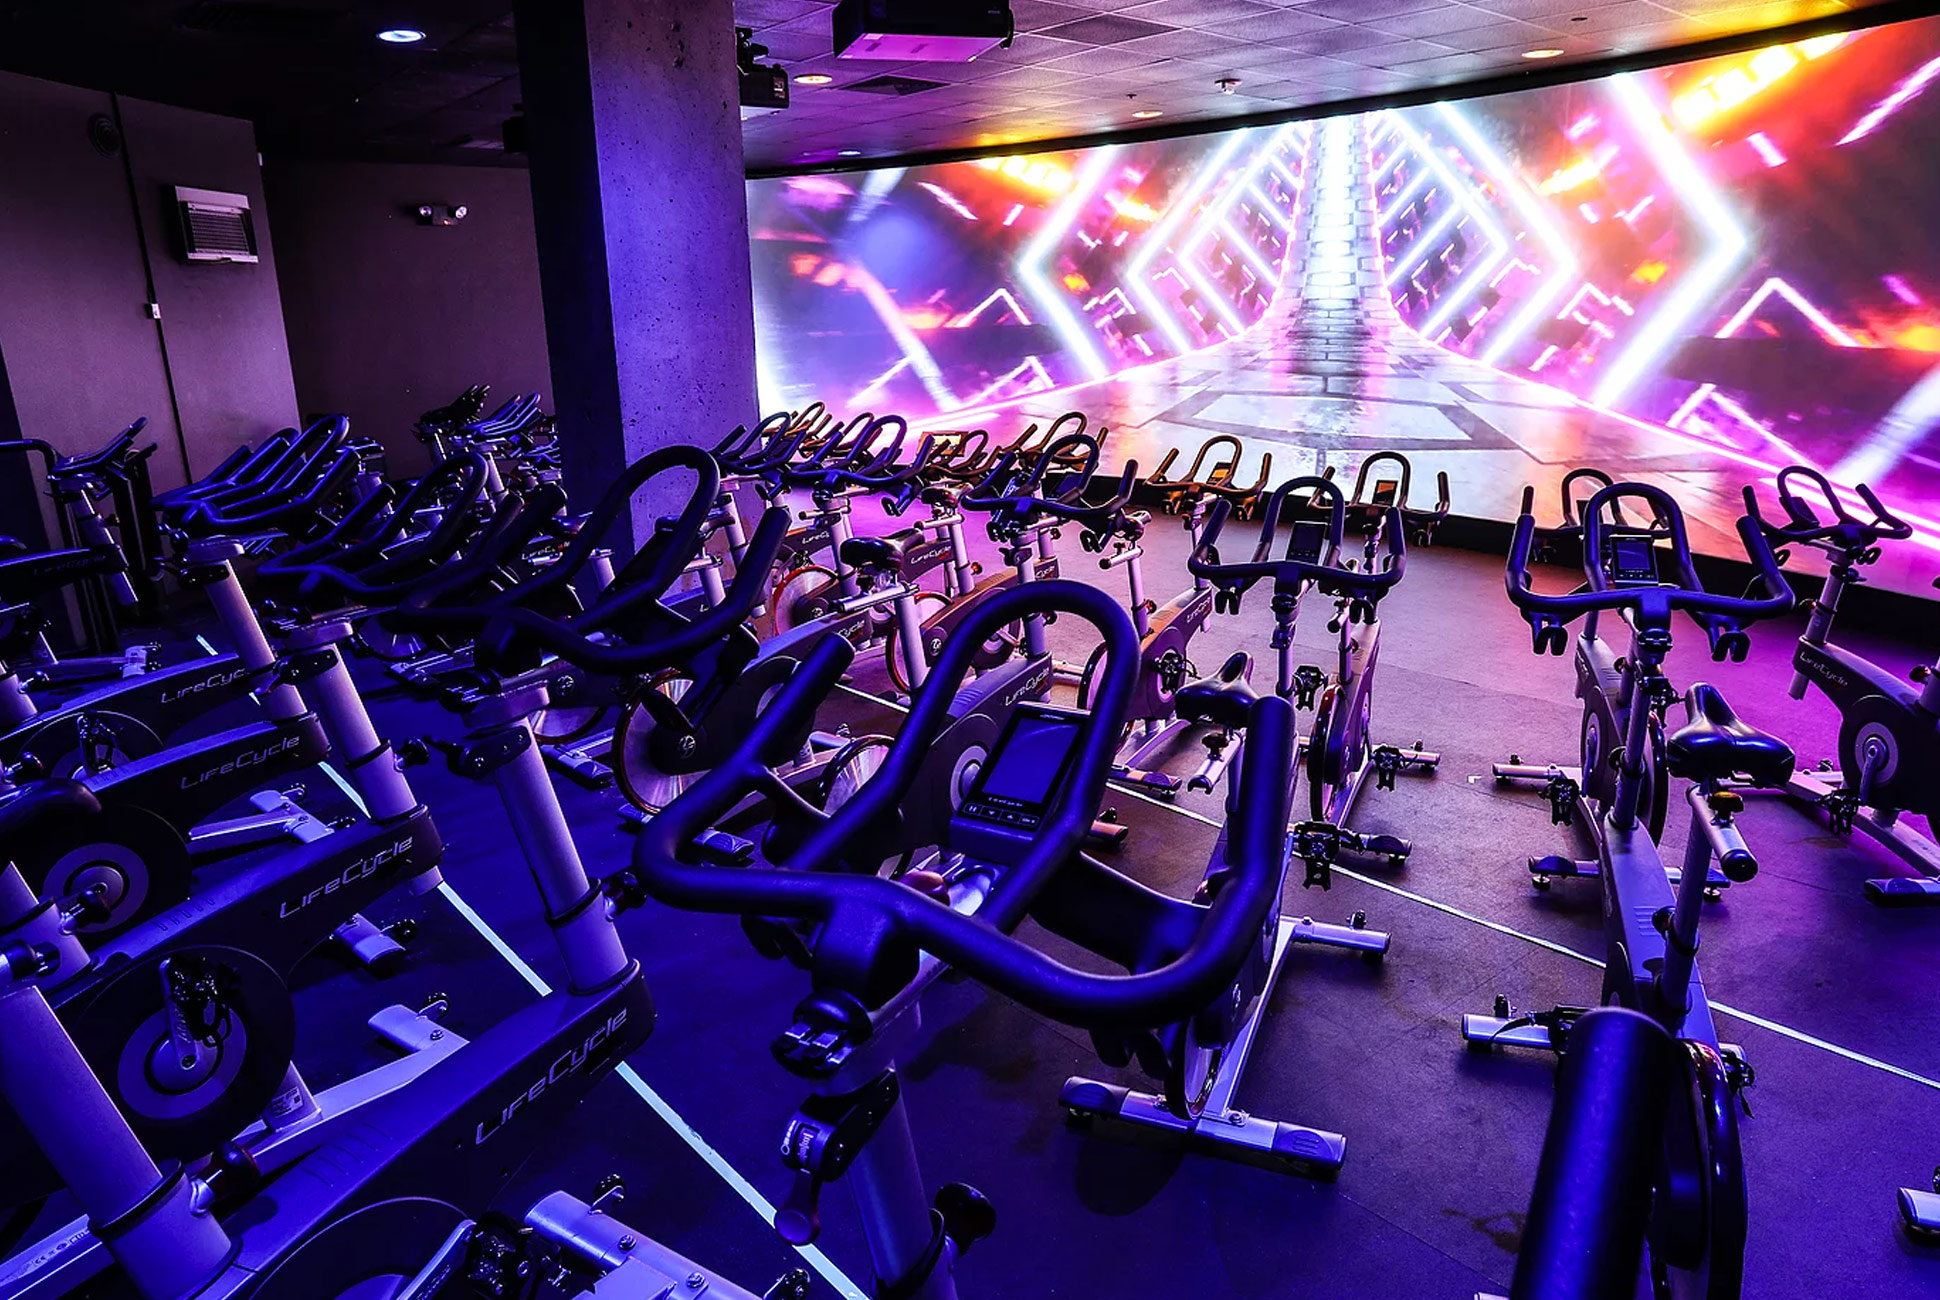 In the 21st century, hotels are expected to offer a lot of high-tech fitness amenities.